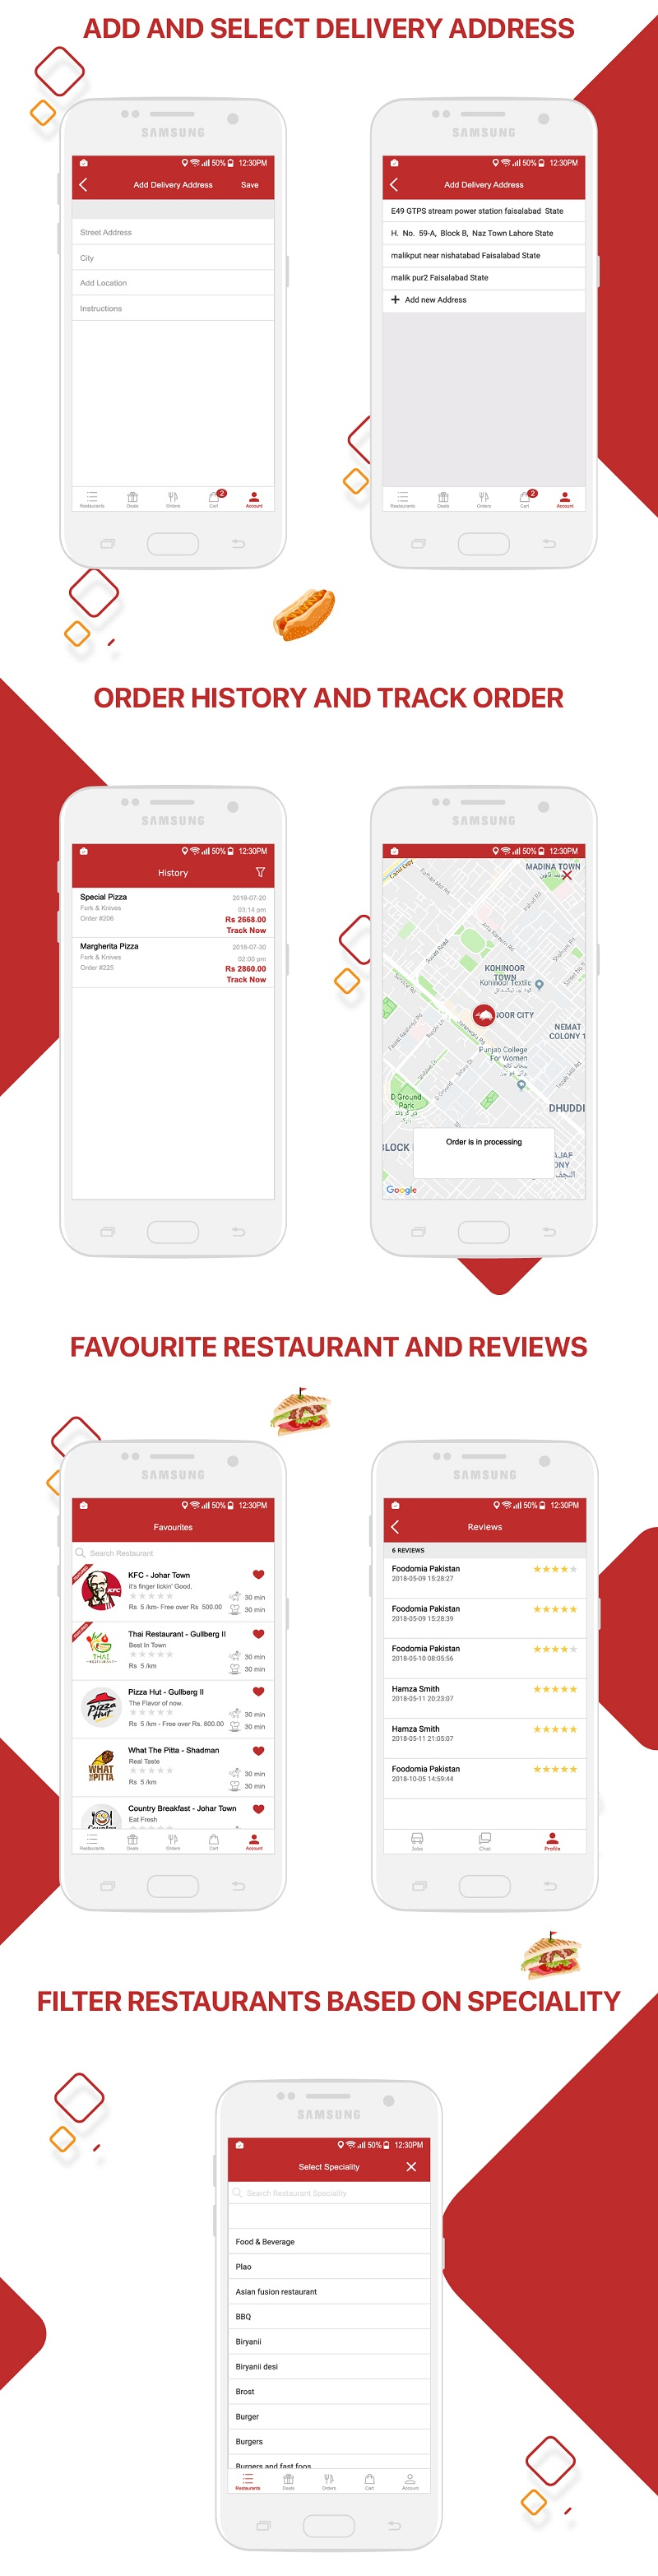 Native Restaurant Food Delivery & Ordering System With Delivery Boy - Android v2.0.6 - 13